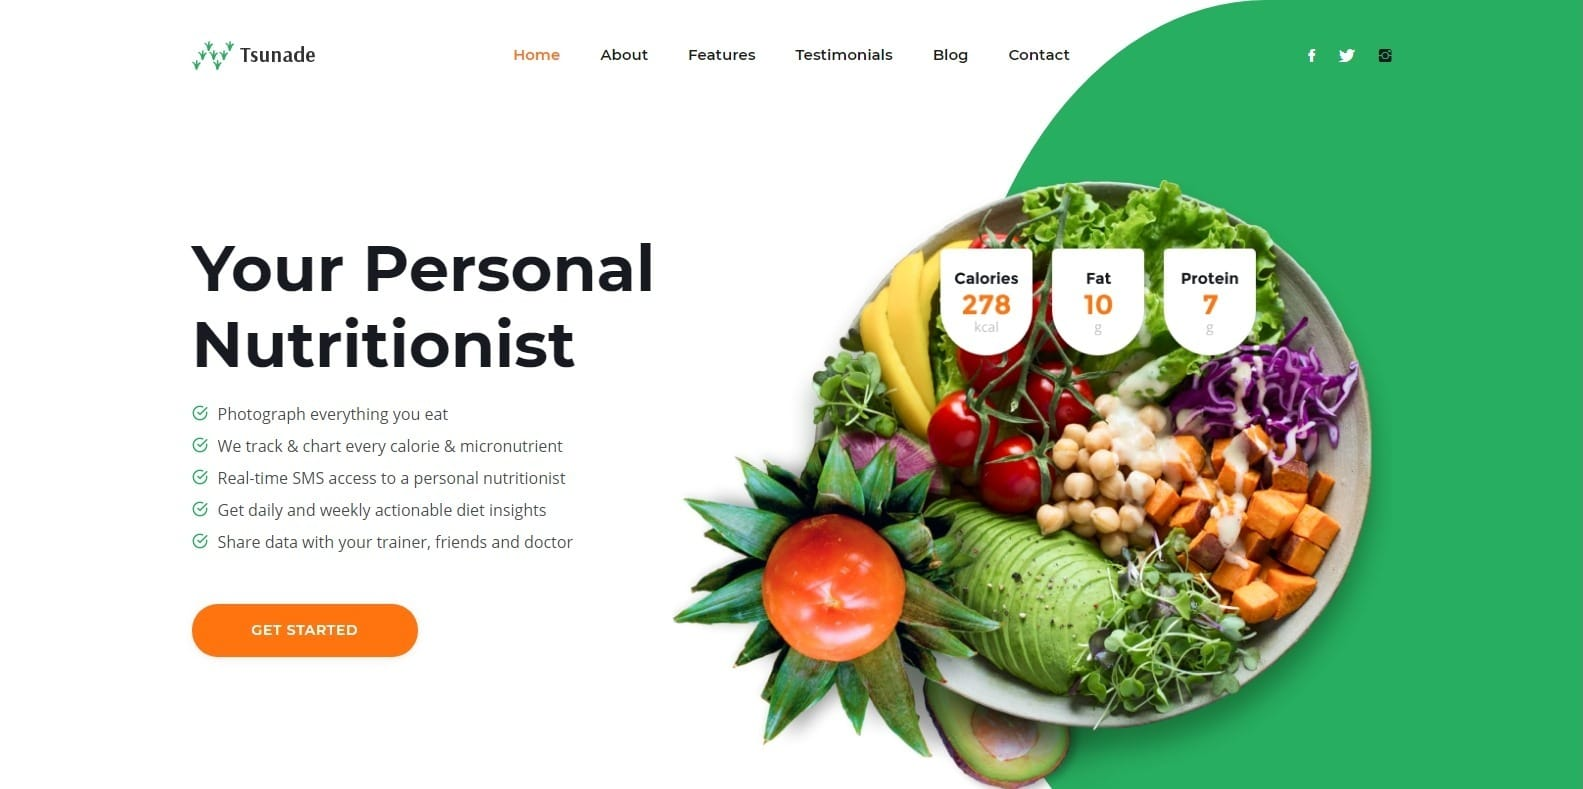 tsunade-food-blog-website-template-html